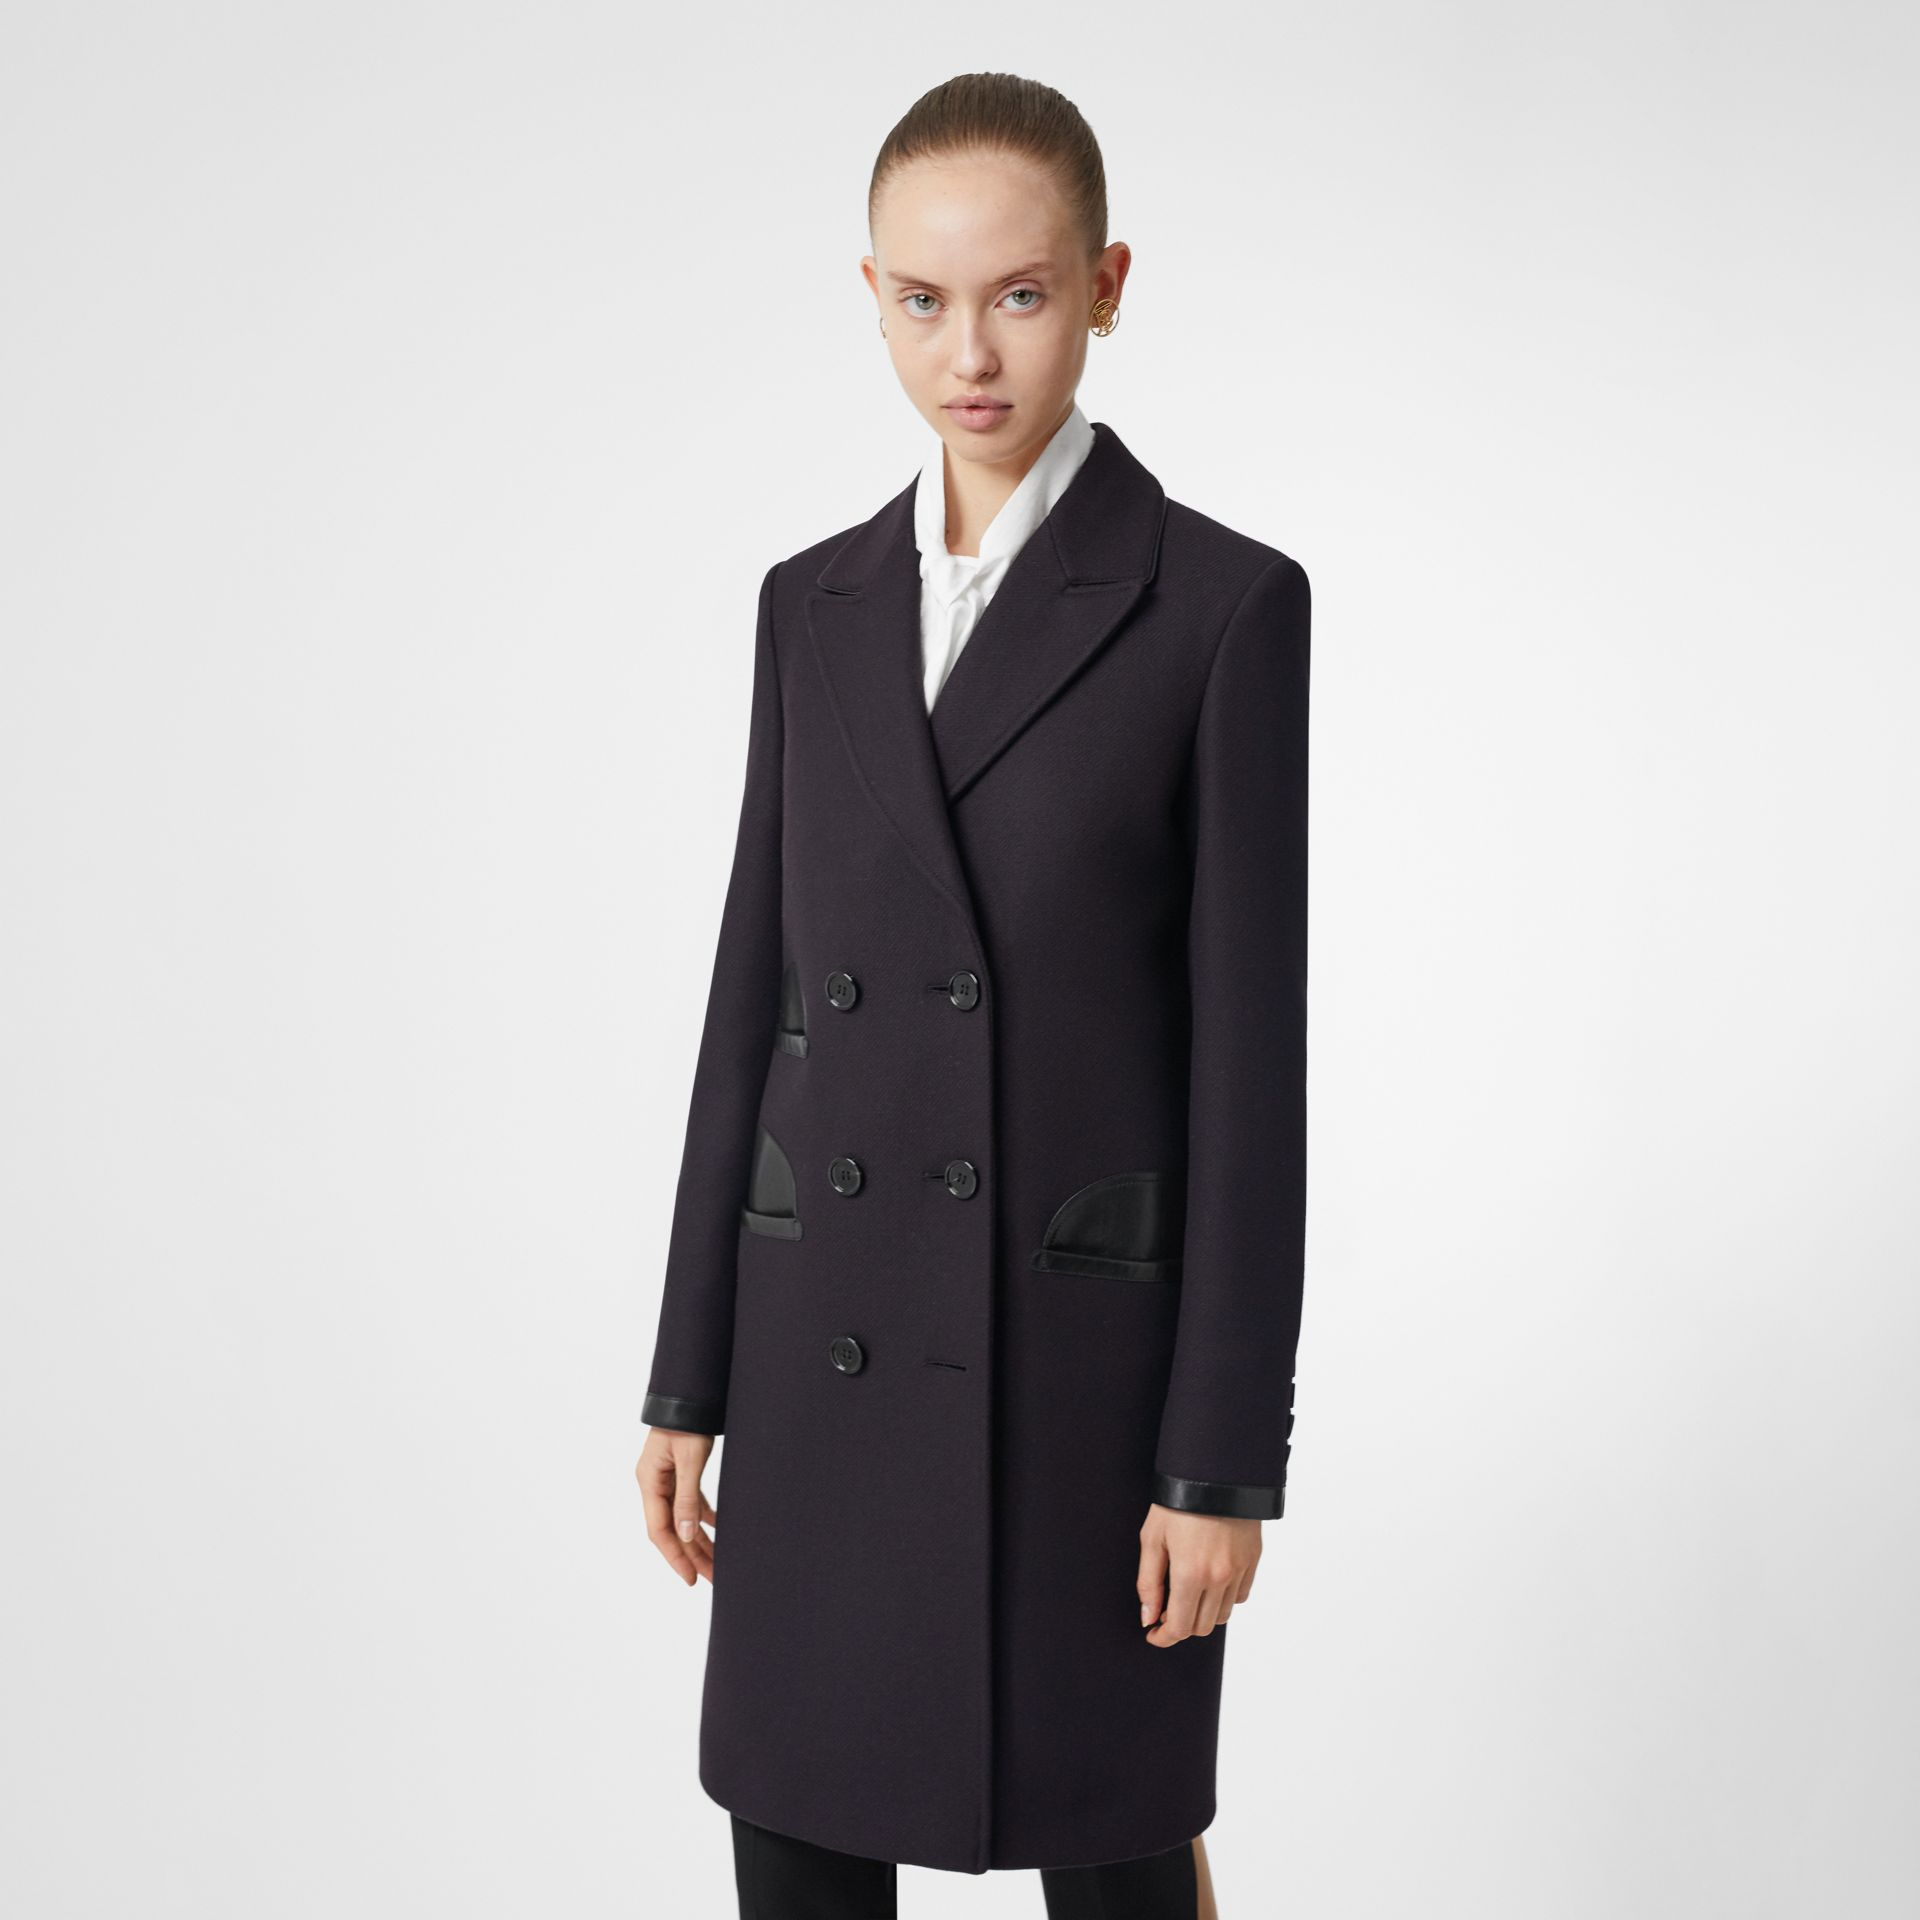 Lambskin Trim Wool Cashmere Blend Tailored Coat in Black Maroon - Women | Burberry - gallery image 4